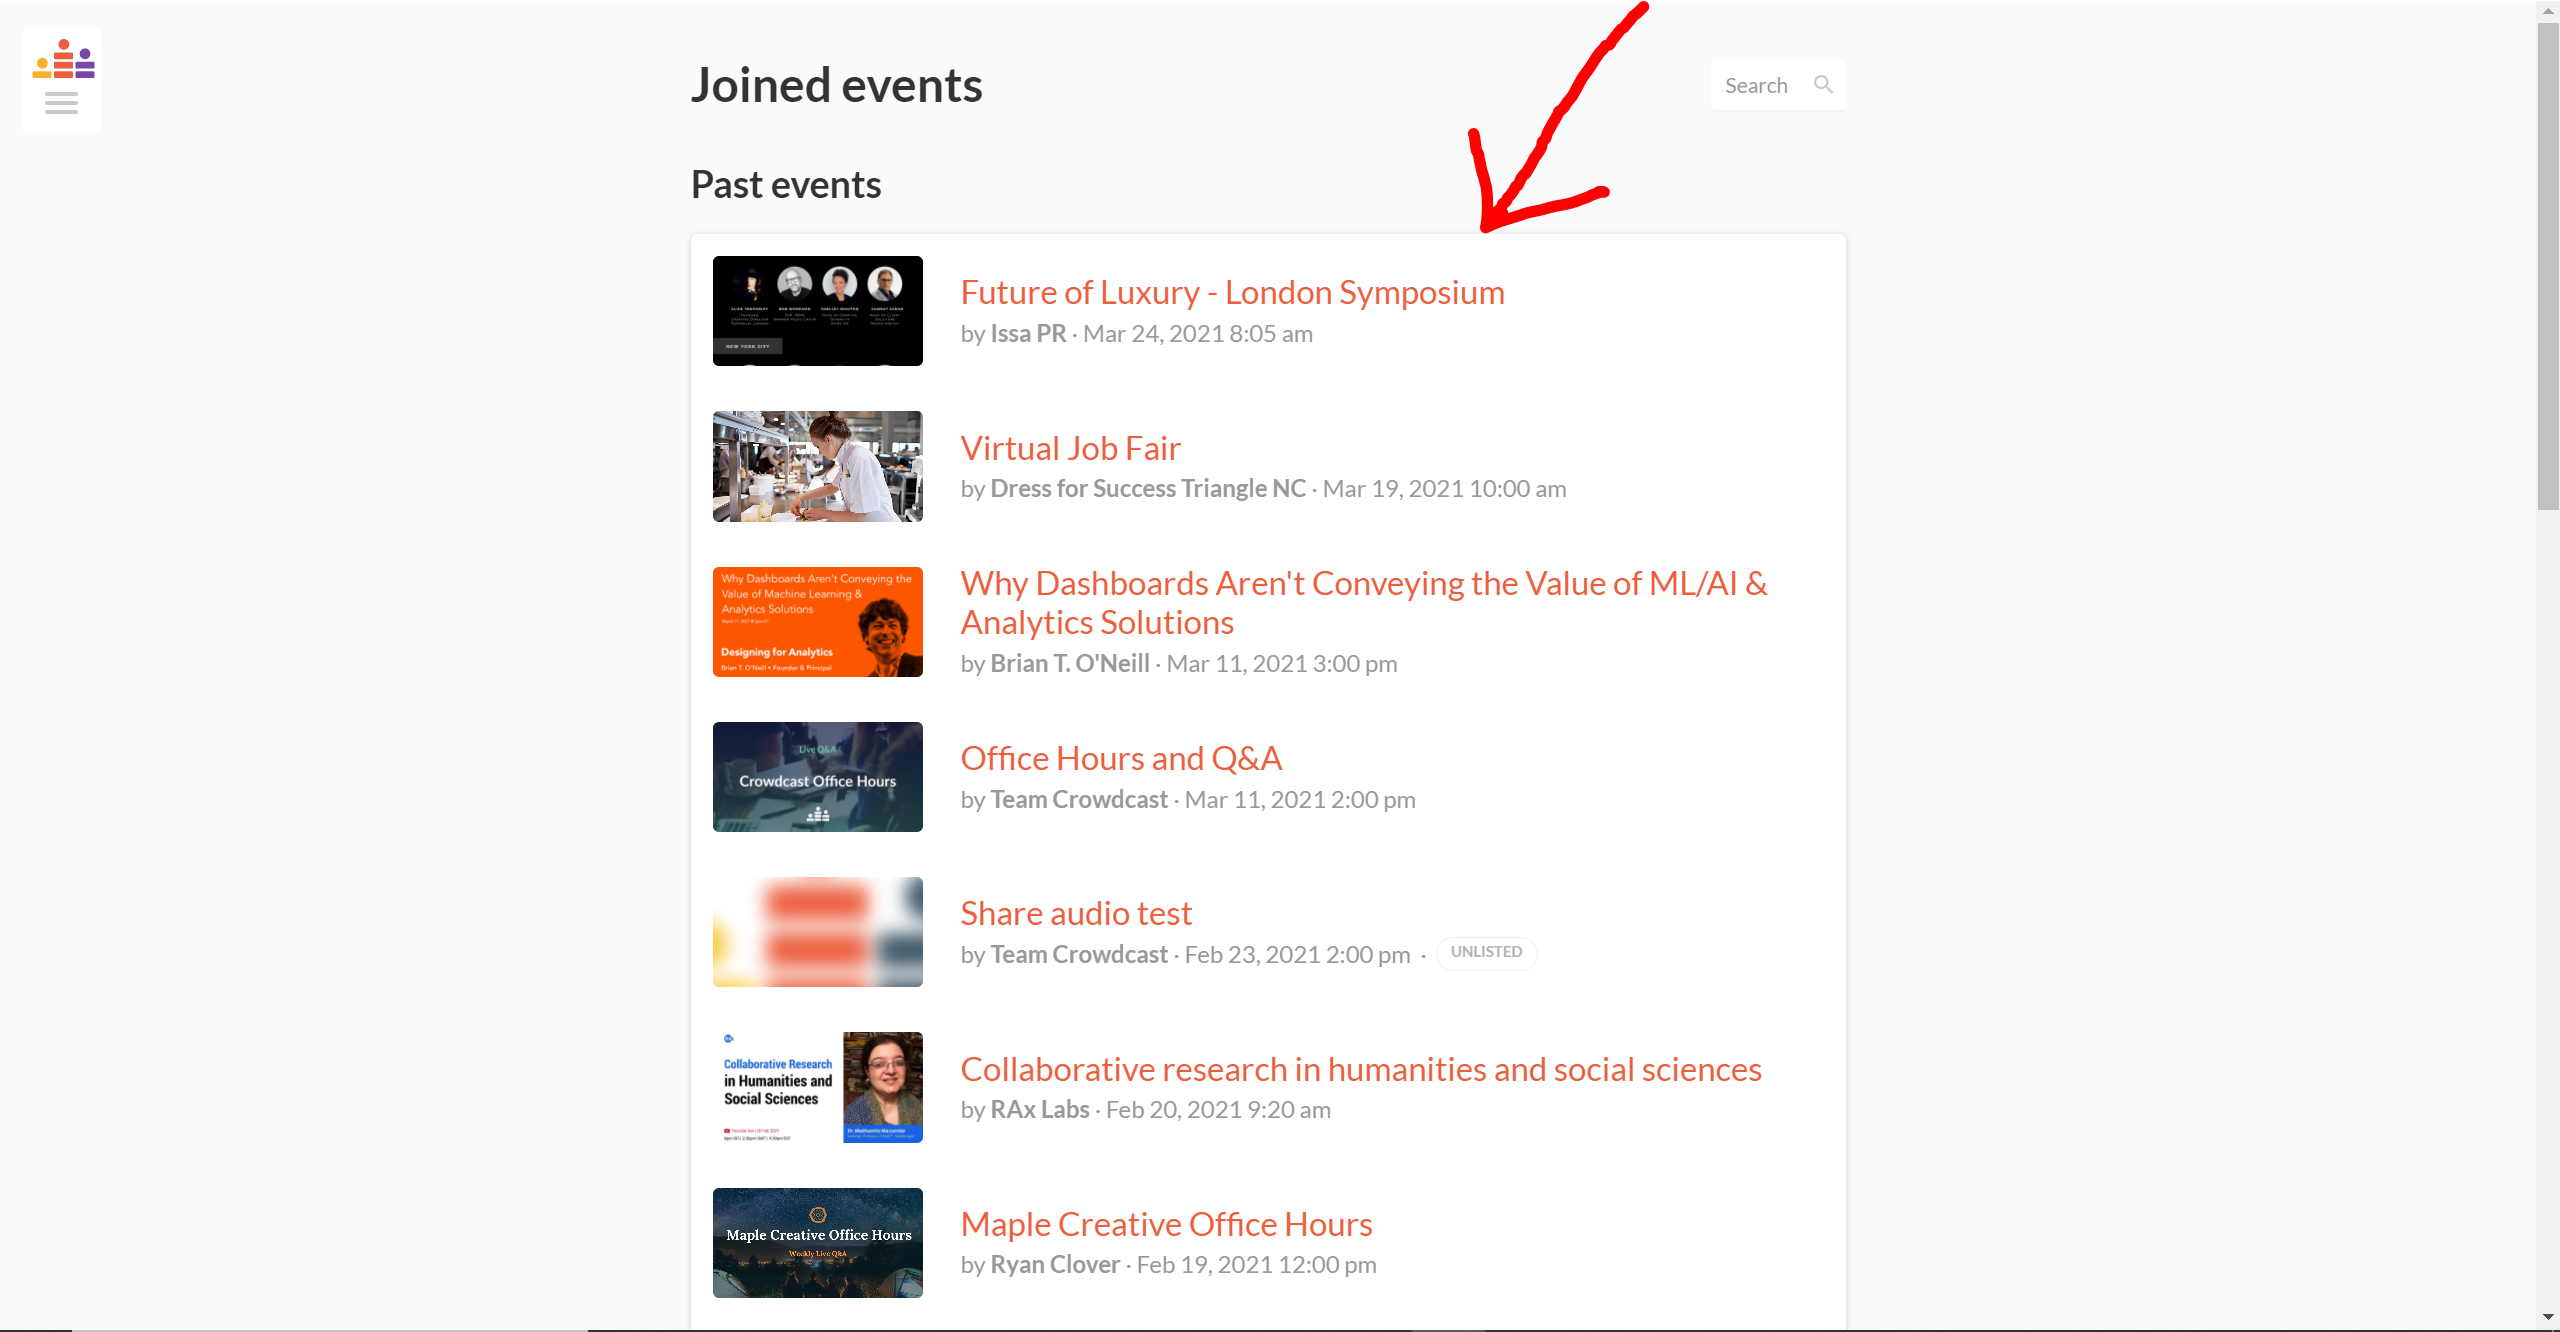 joined events with an arrow pointing to an event